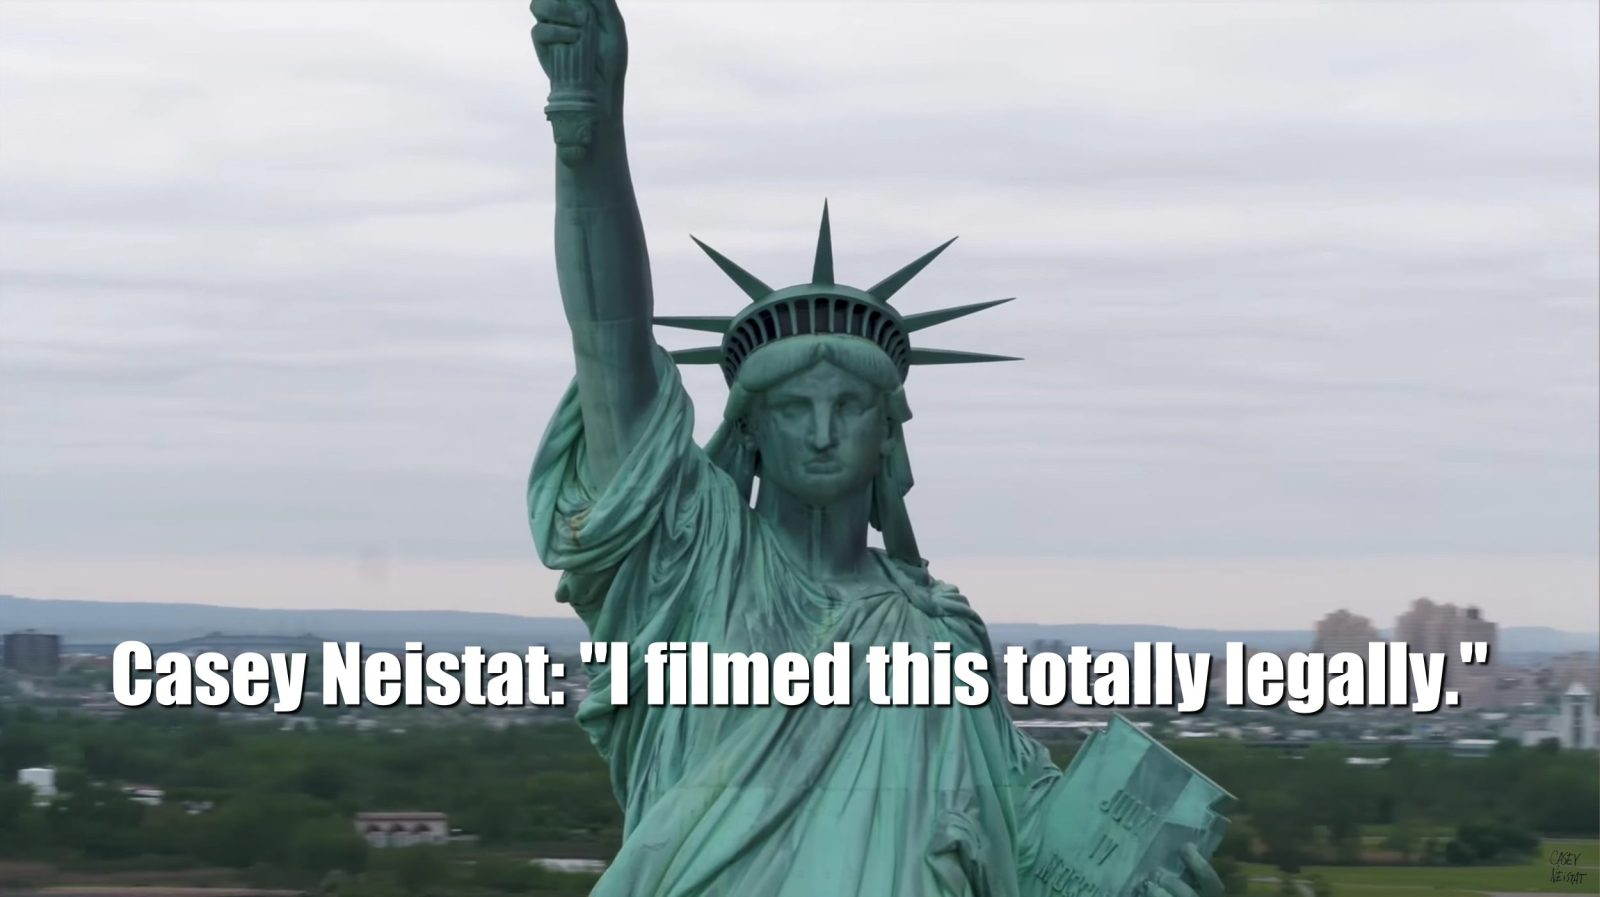 bbdb67a91f Casey Neistat s latest drone video of the Statue of Liberty in New York  ignites discussion over FAA drone rules